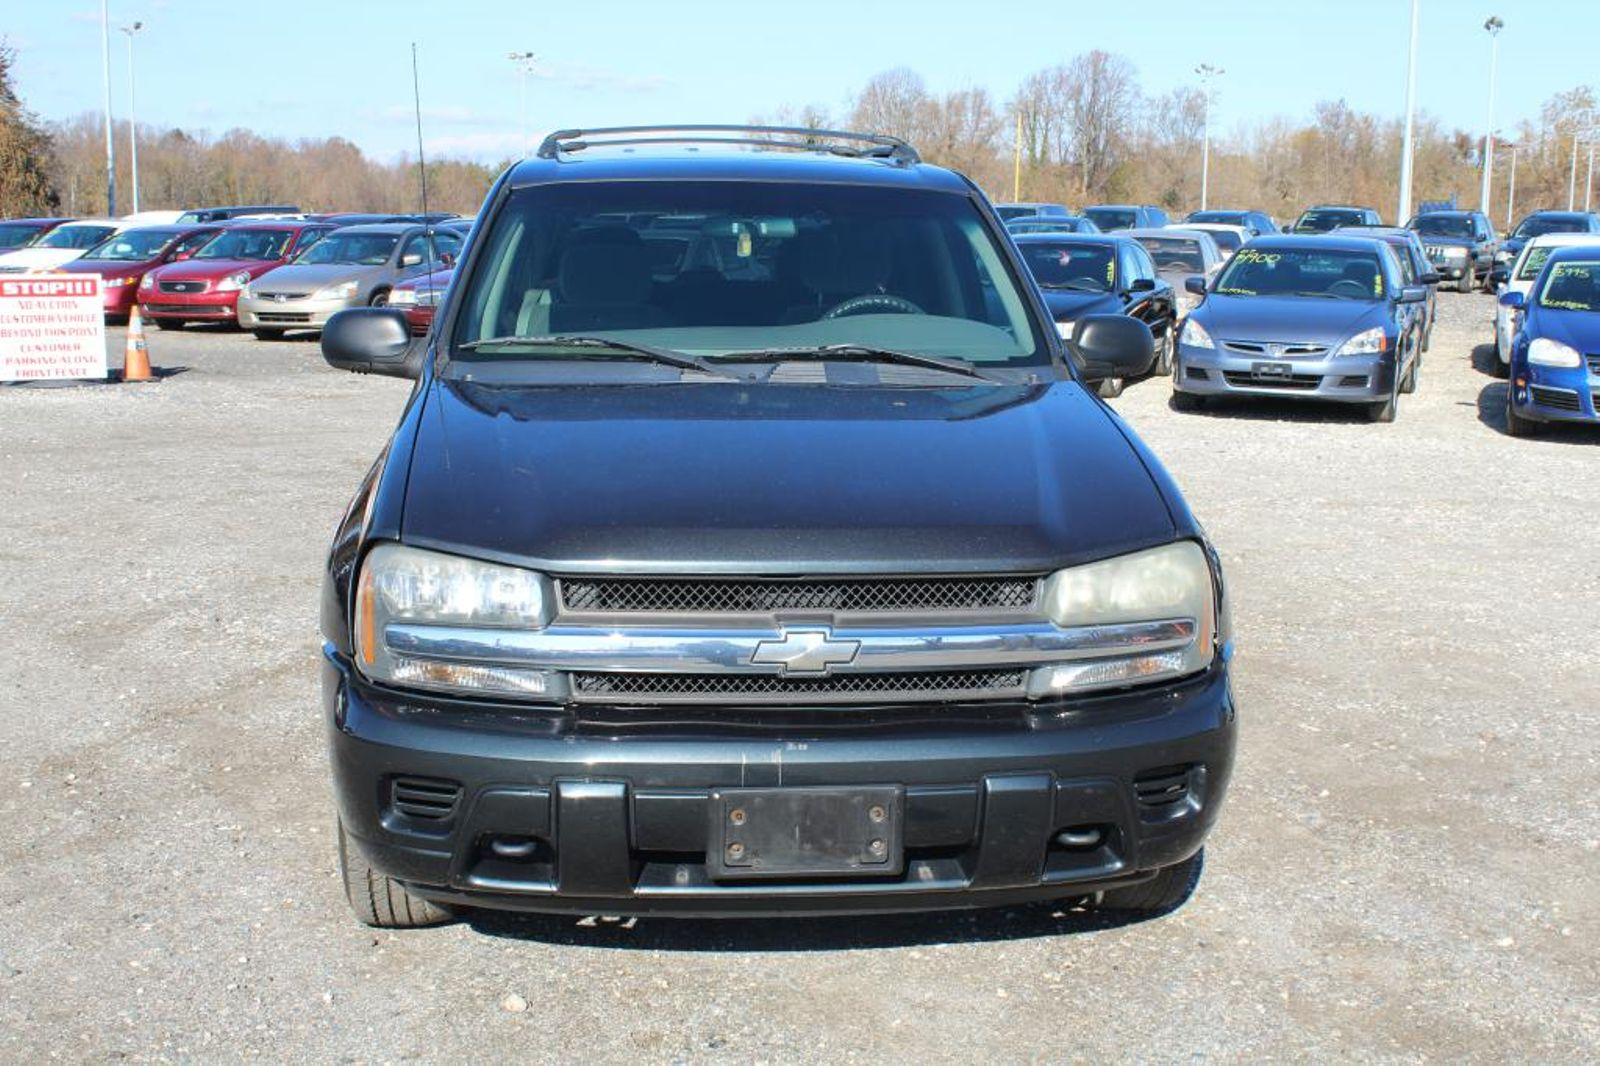 ... 2004 Chevrolet TrailBlazer LS city MD South County Public Auto Auction  in Harwood, ...